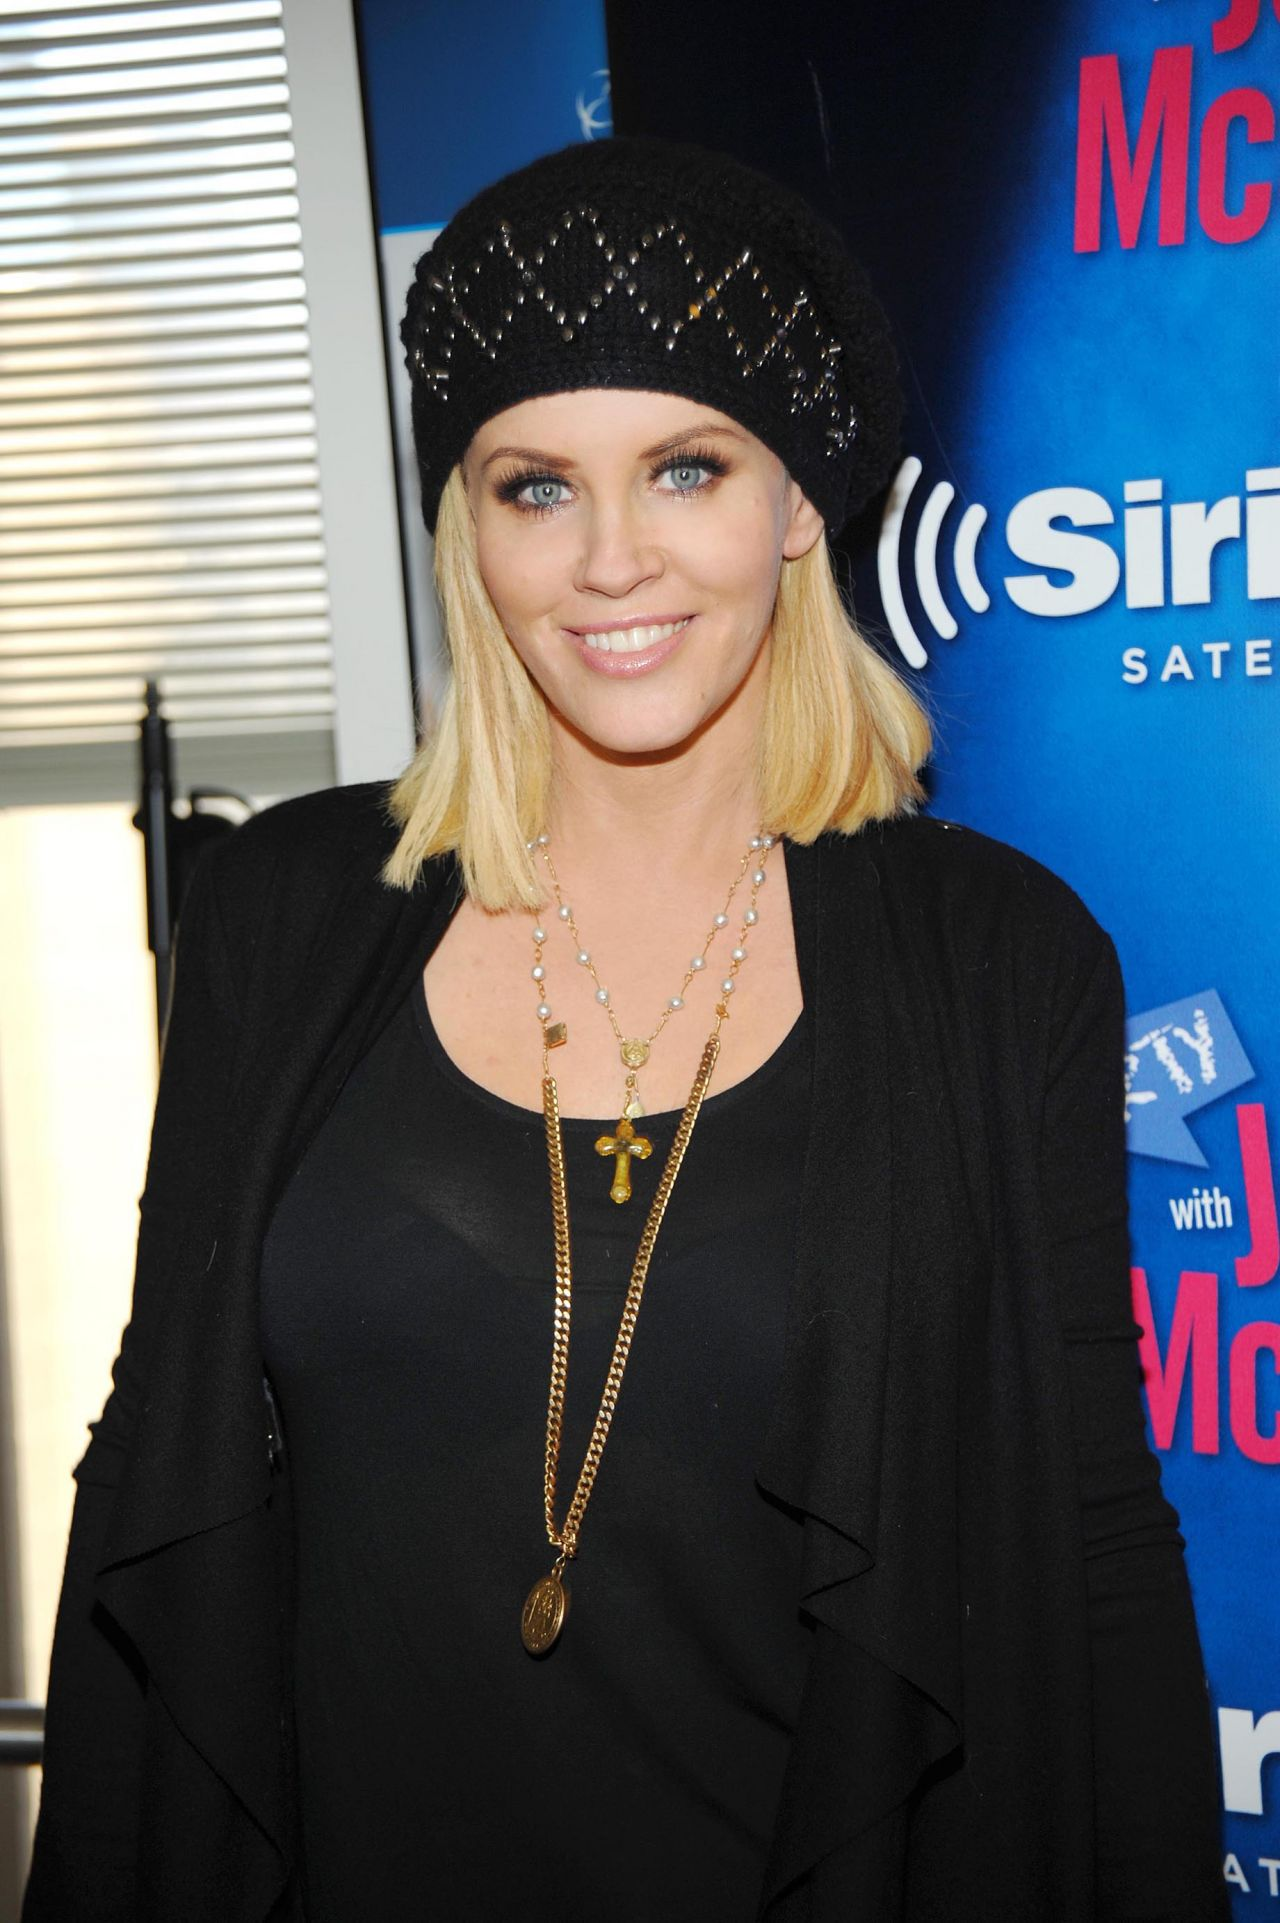 Jenny McCarthy at SiriusXM Studios in NYC - Jan 2015